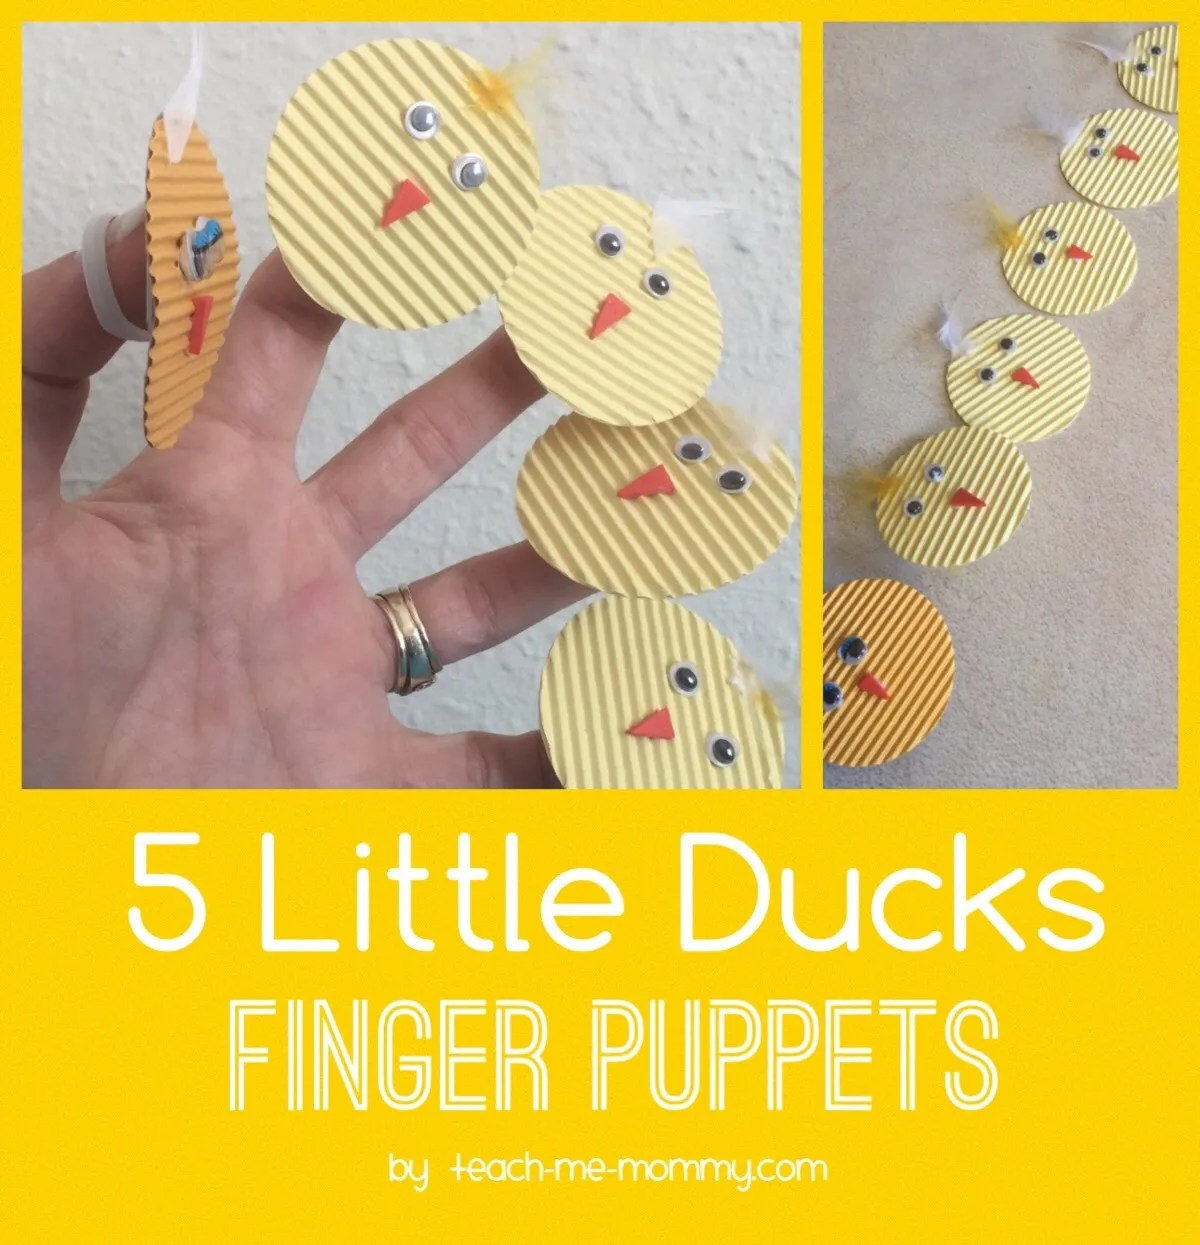 Five Little Ducks Finger Puppets